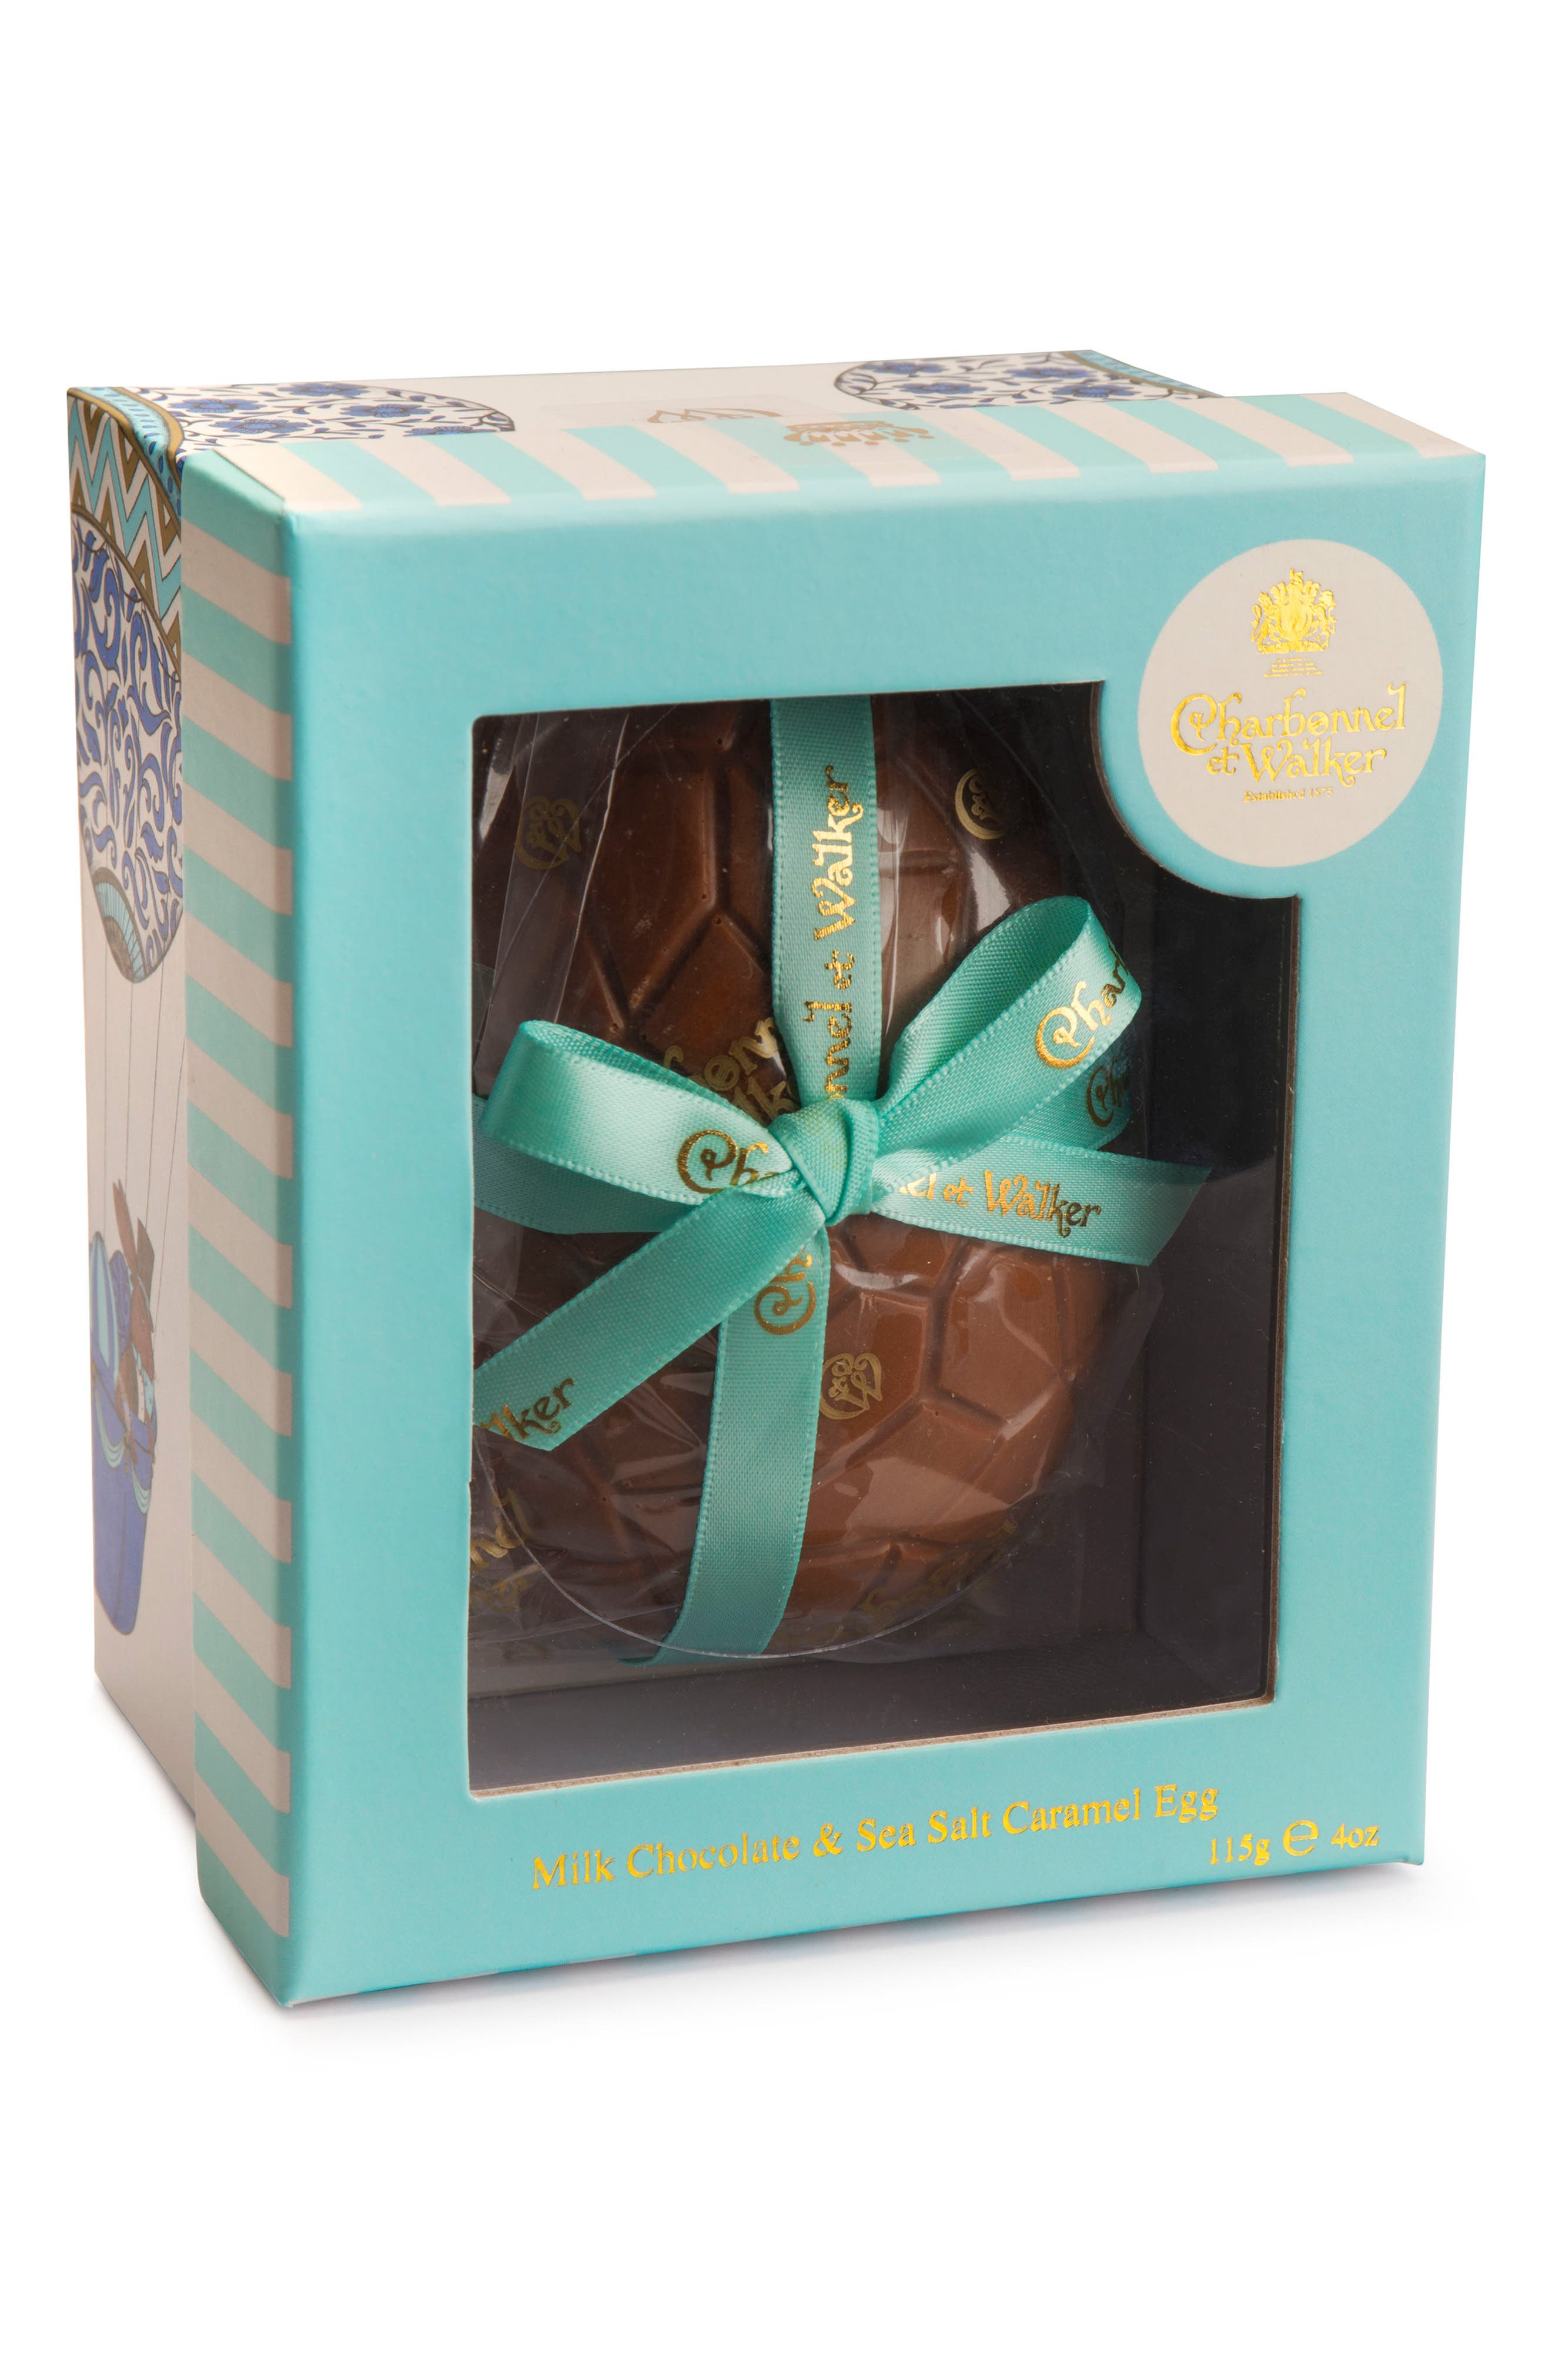 Flavored Truffles & Chocolate Egg in Gift Box,                             Main thumbnail 1, color,                             400